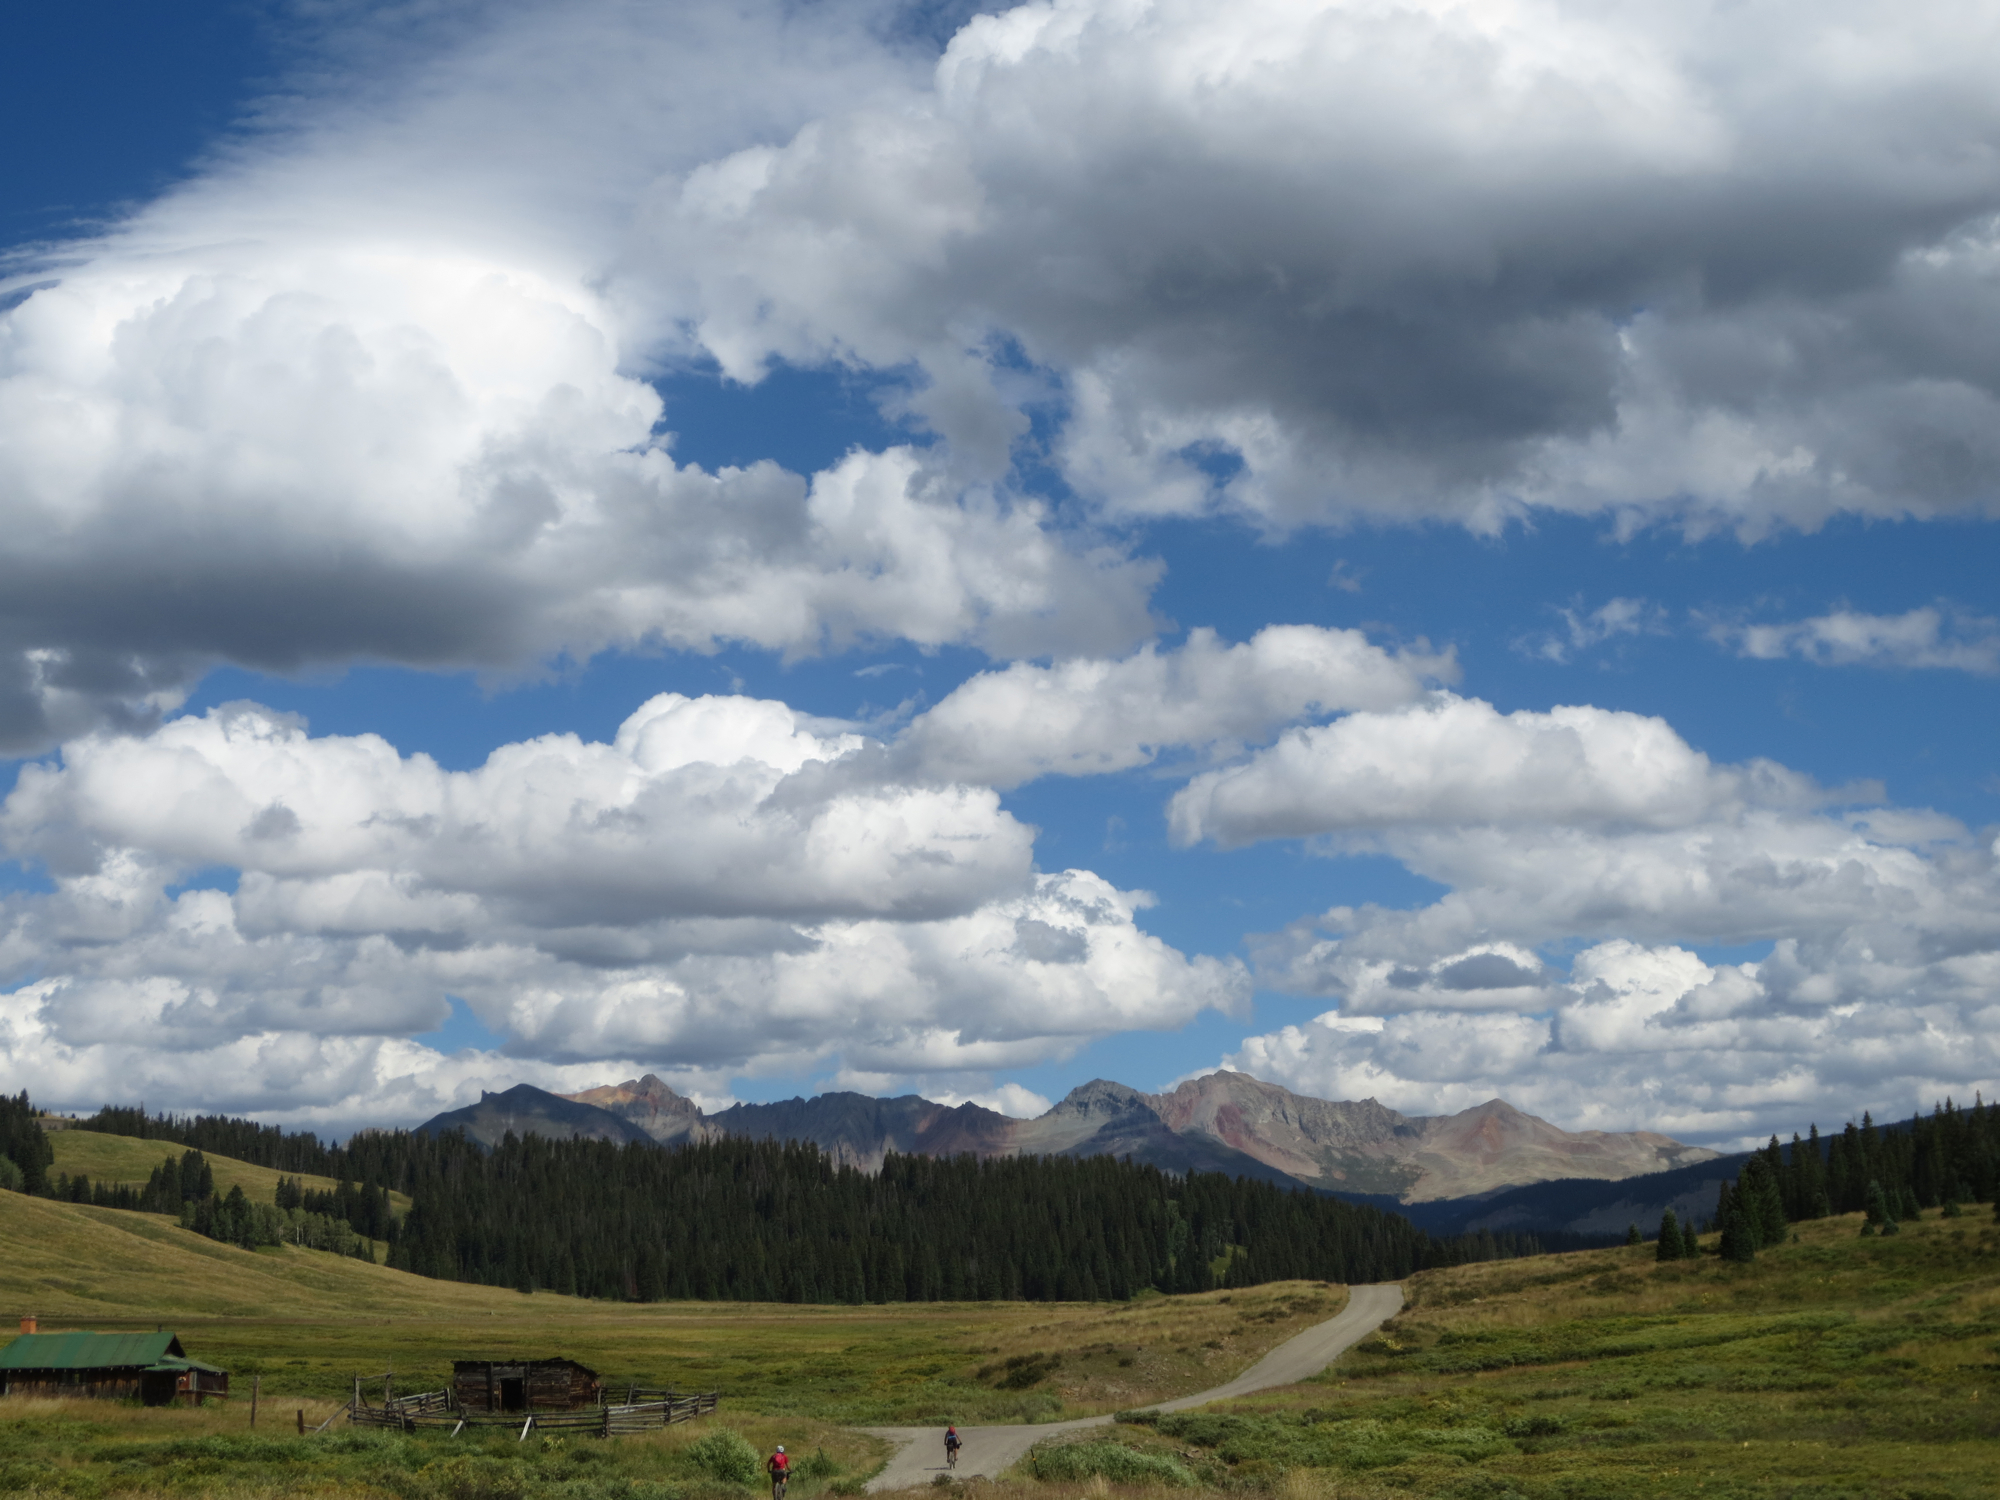 Big sky, big country. Kylie and Danny roll on to the horizon.